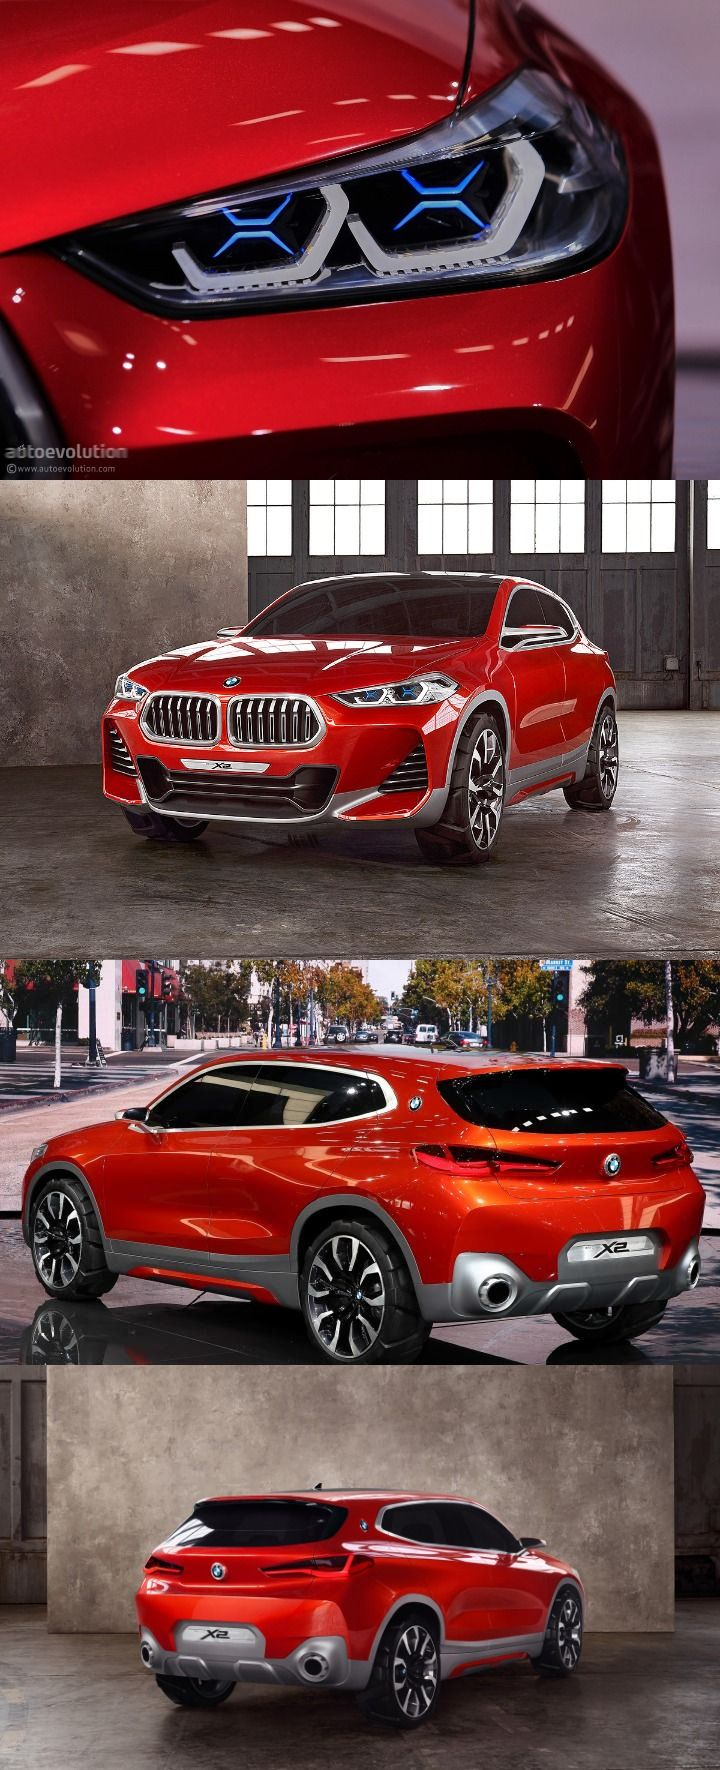 Production bmw x2 will come up as its concept look